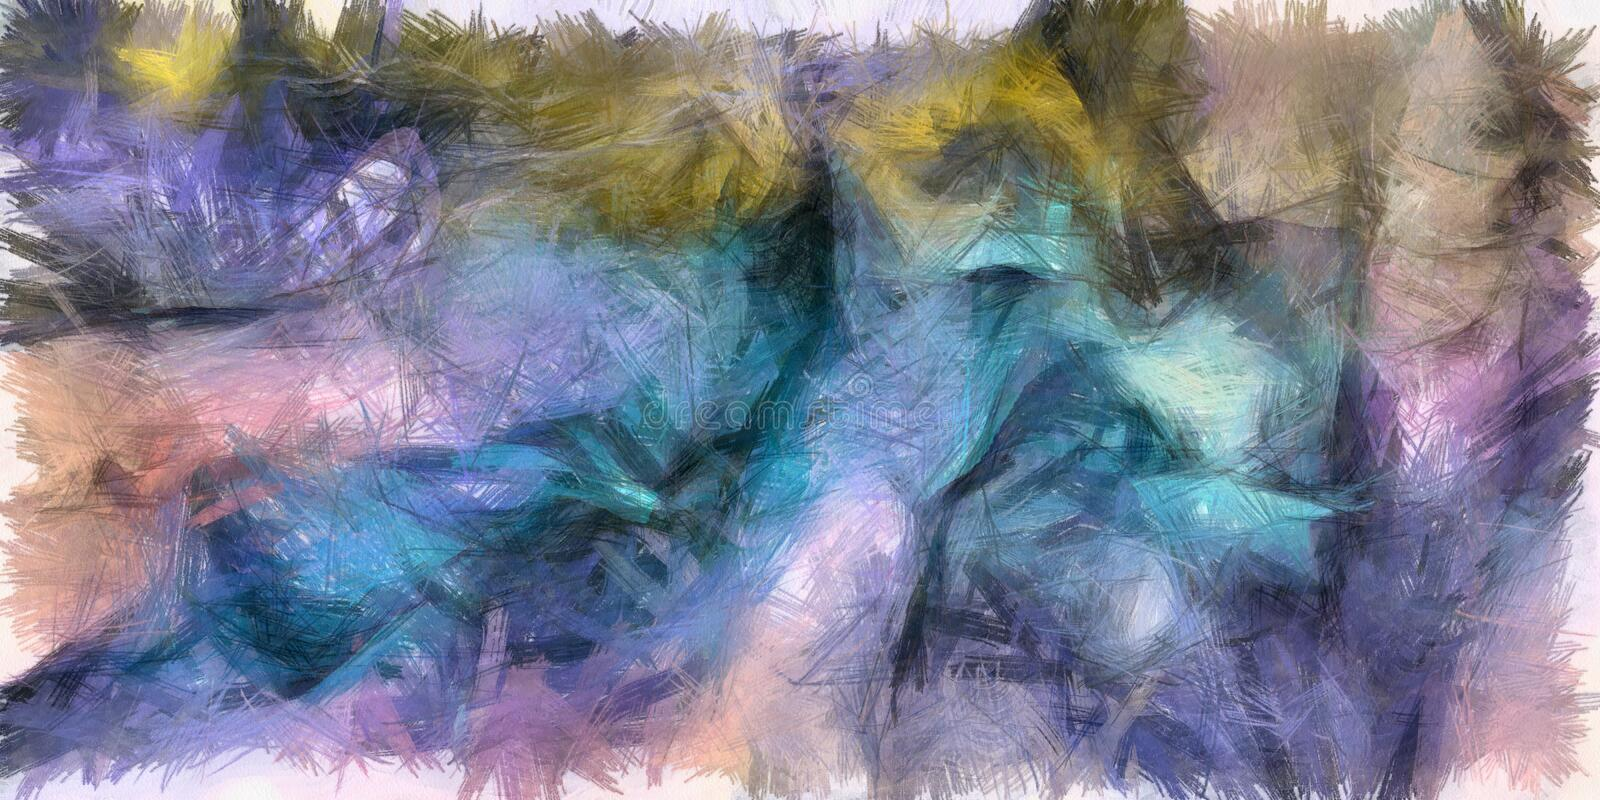 Azure colors. Colorful Abstract Painting Blue Azure Brush Strokes vector illustration